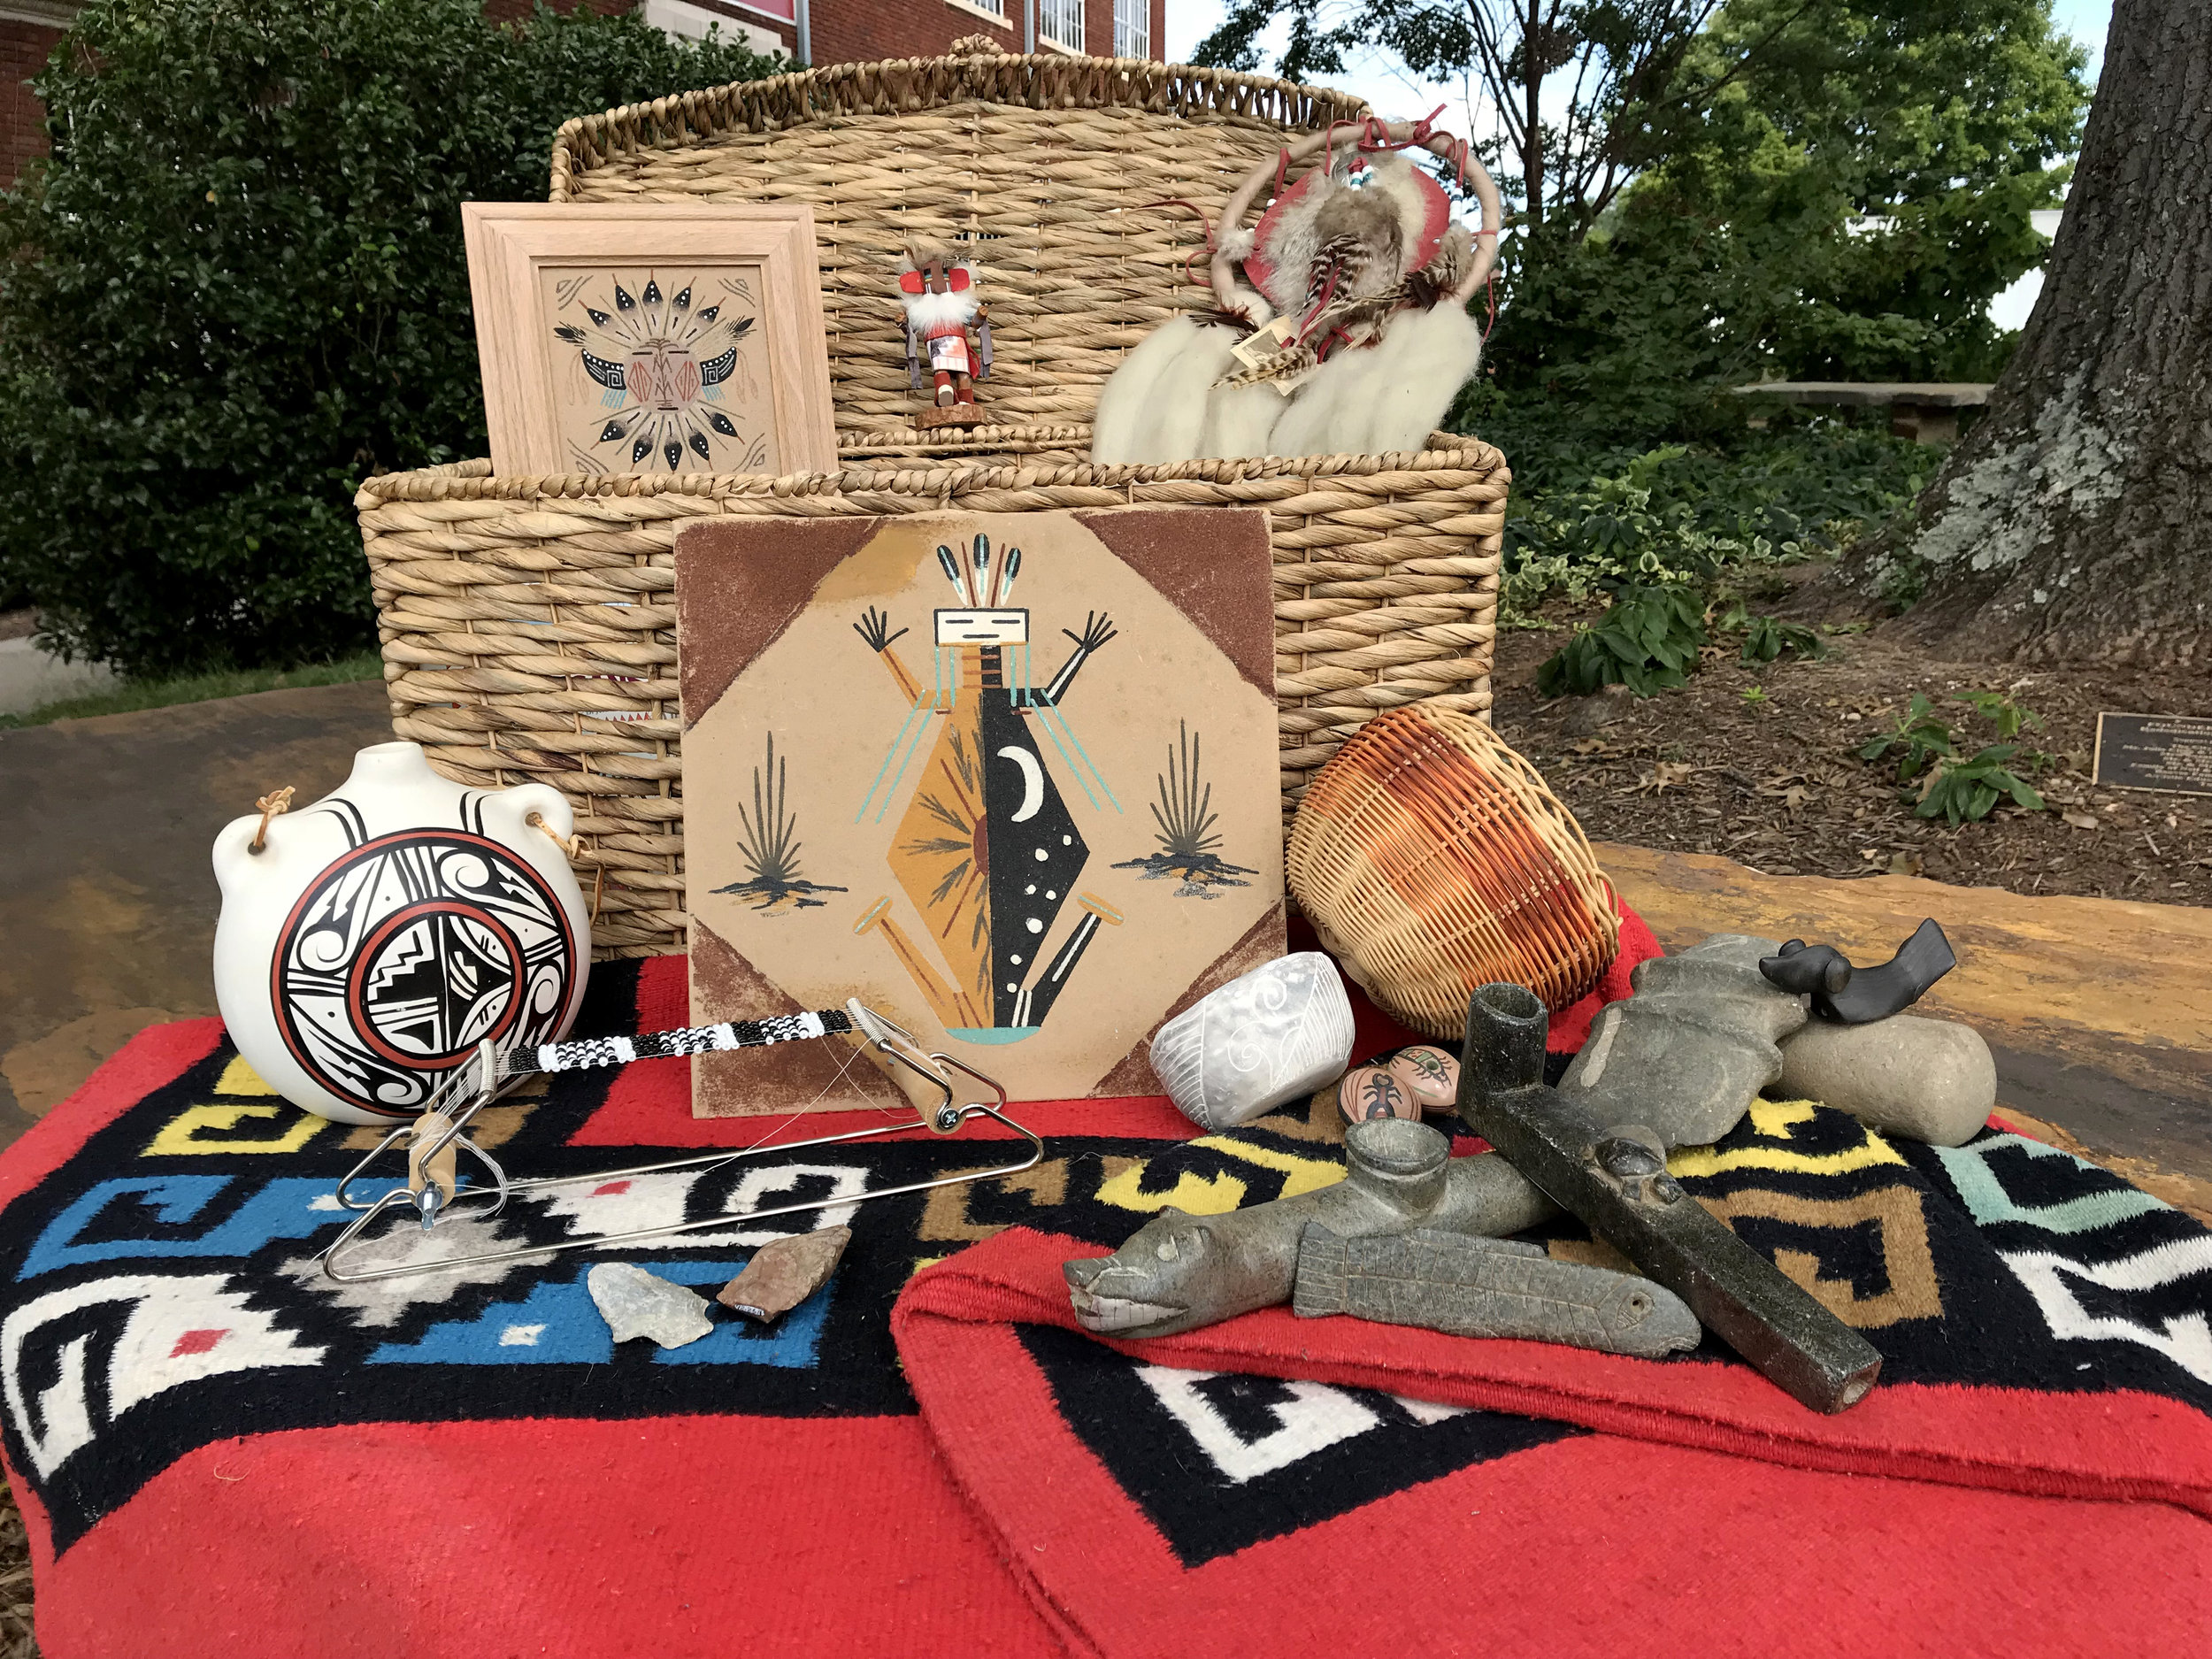 Native American Kit |  Hopi Kachina doll, mandella, art print, Navajo wool blanket, books, lesson plans, Cherokee basket, arrowheads, stone pipes, and ceramic canteen.